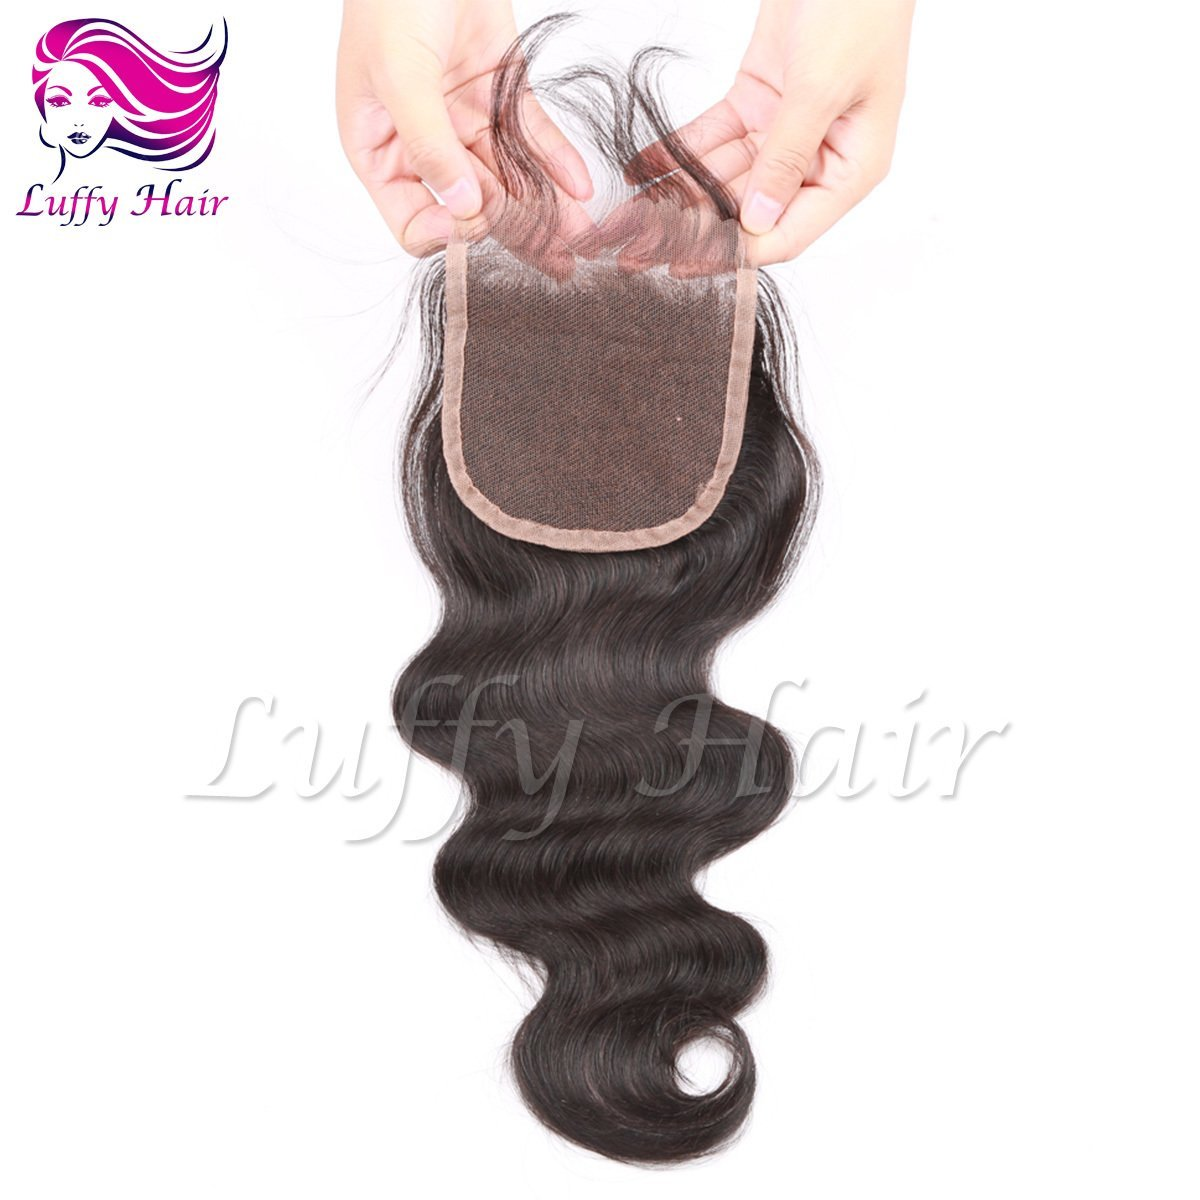 8A Virgin Human Hair 4x4 Body Wave Lace Closure- KCL008